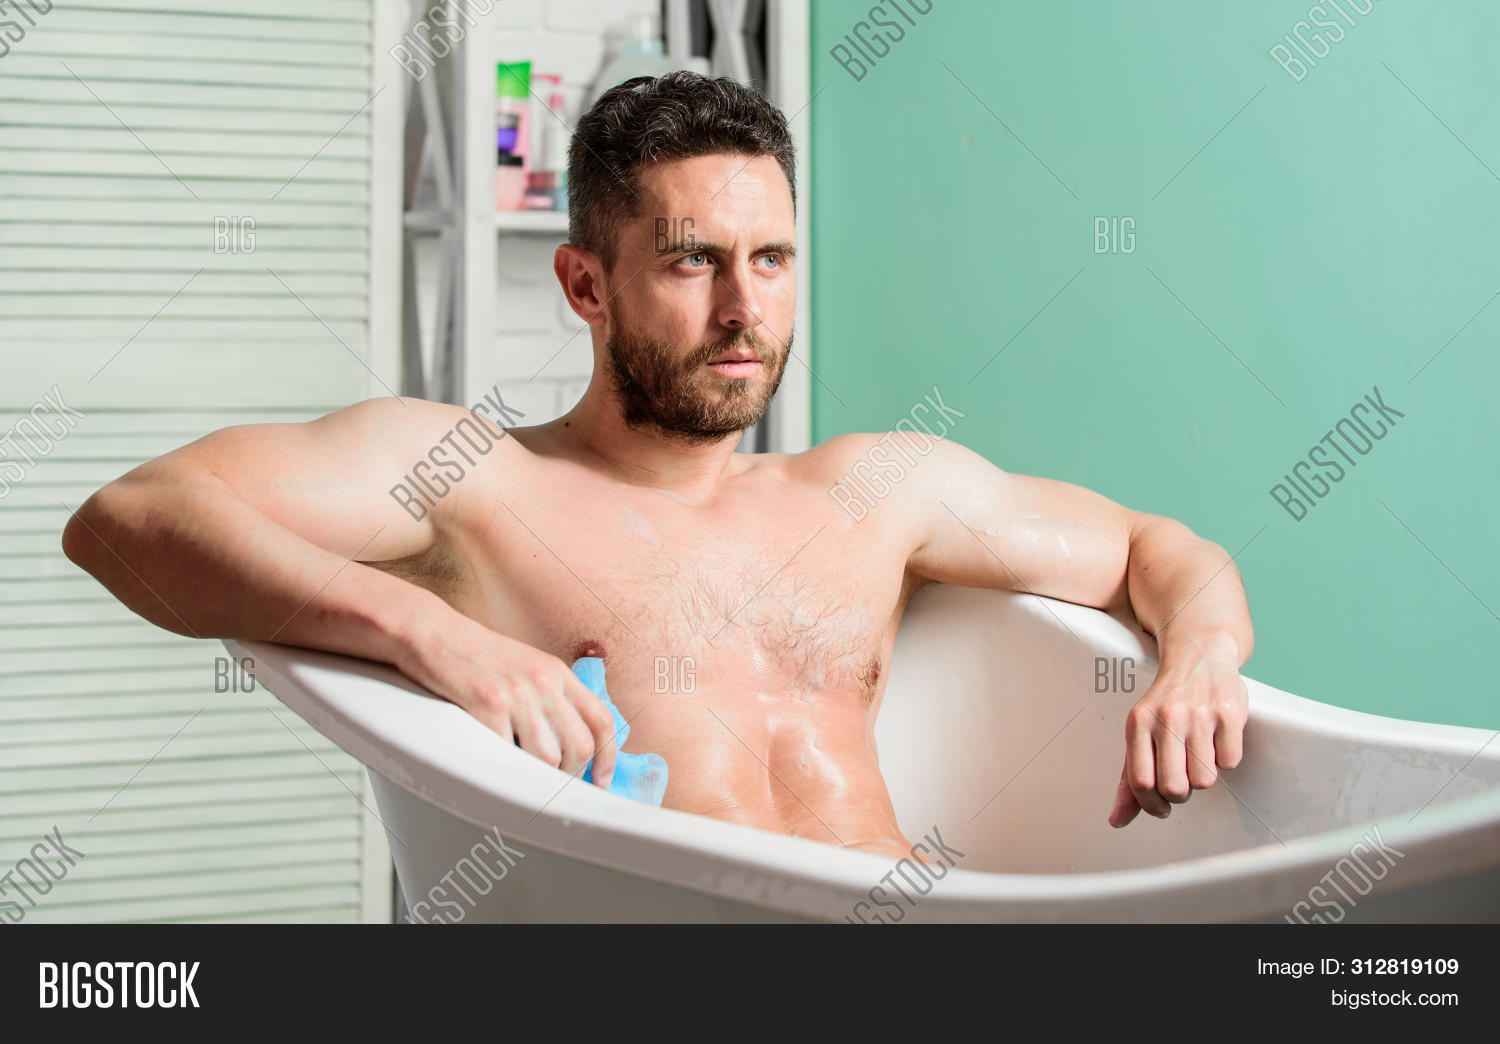 Bathing can improve heart health. Personal hygiene. Take care hygiene. Cleaning parts body. Hygiene concept. Man muscular torso sit in bathtub. Skin care. Hygienic procedure concept. Total relaxation